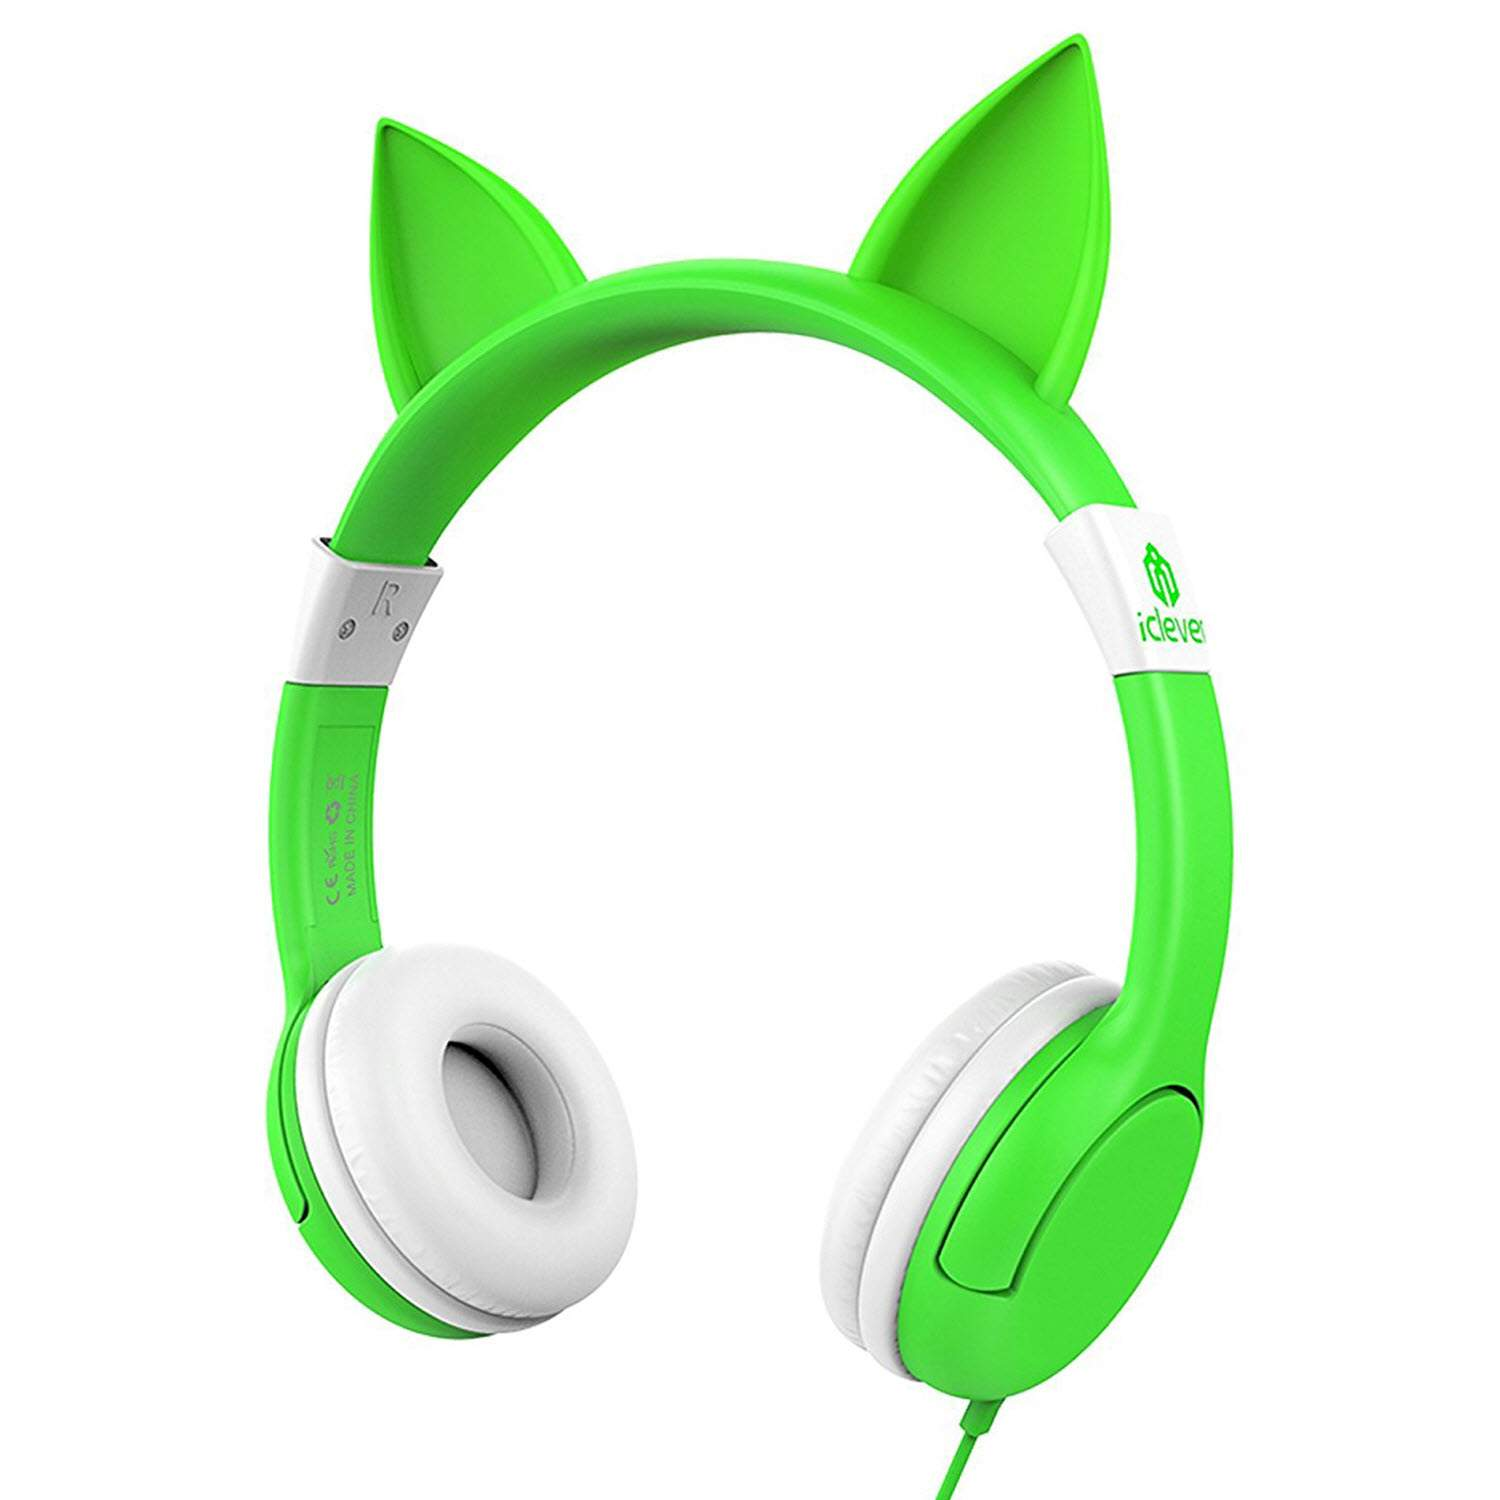 iClever BoostCare Wired Kids Cat Ear Headphones (Green)